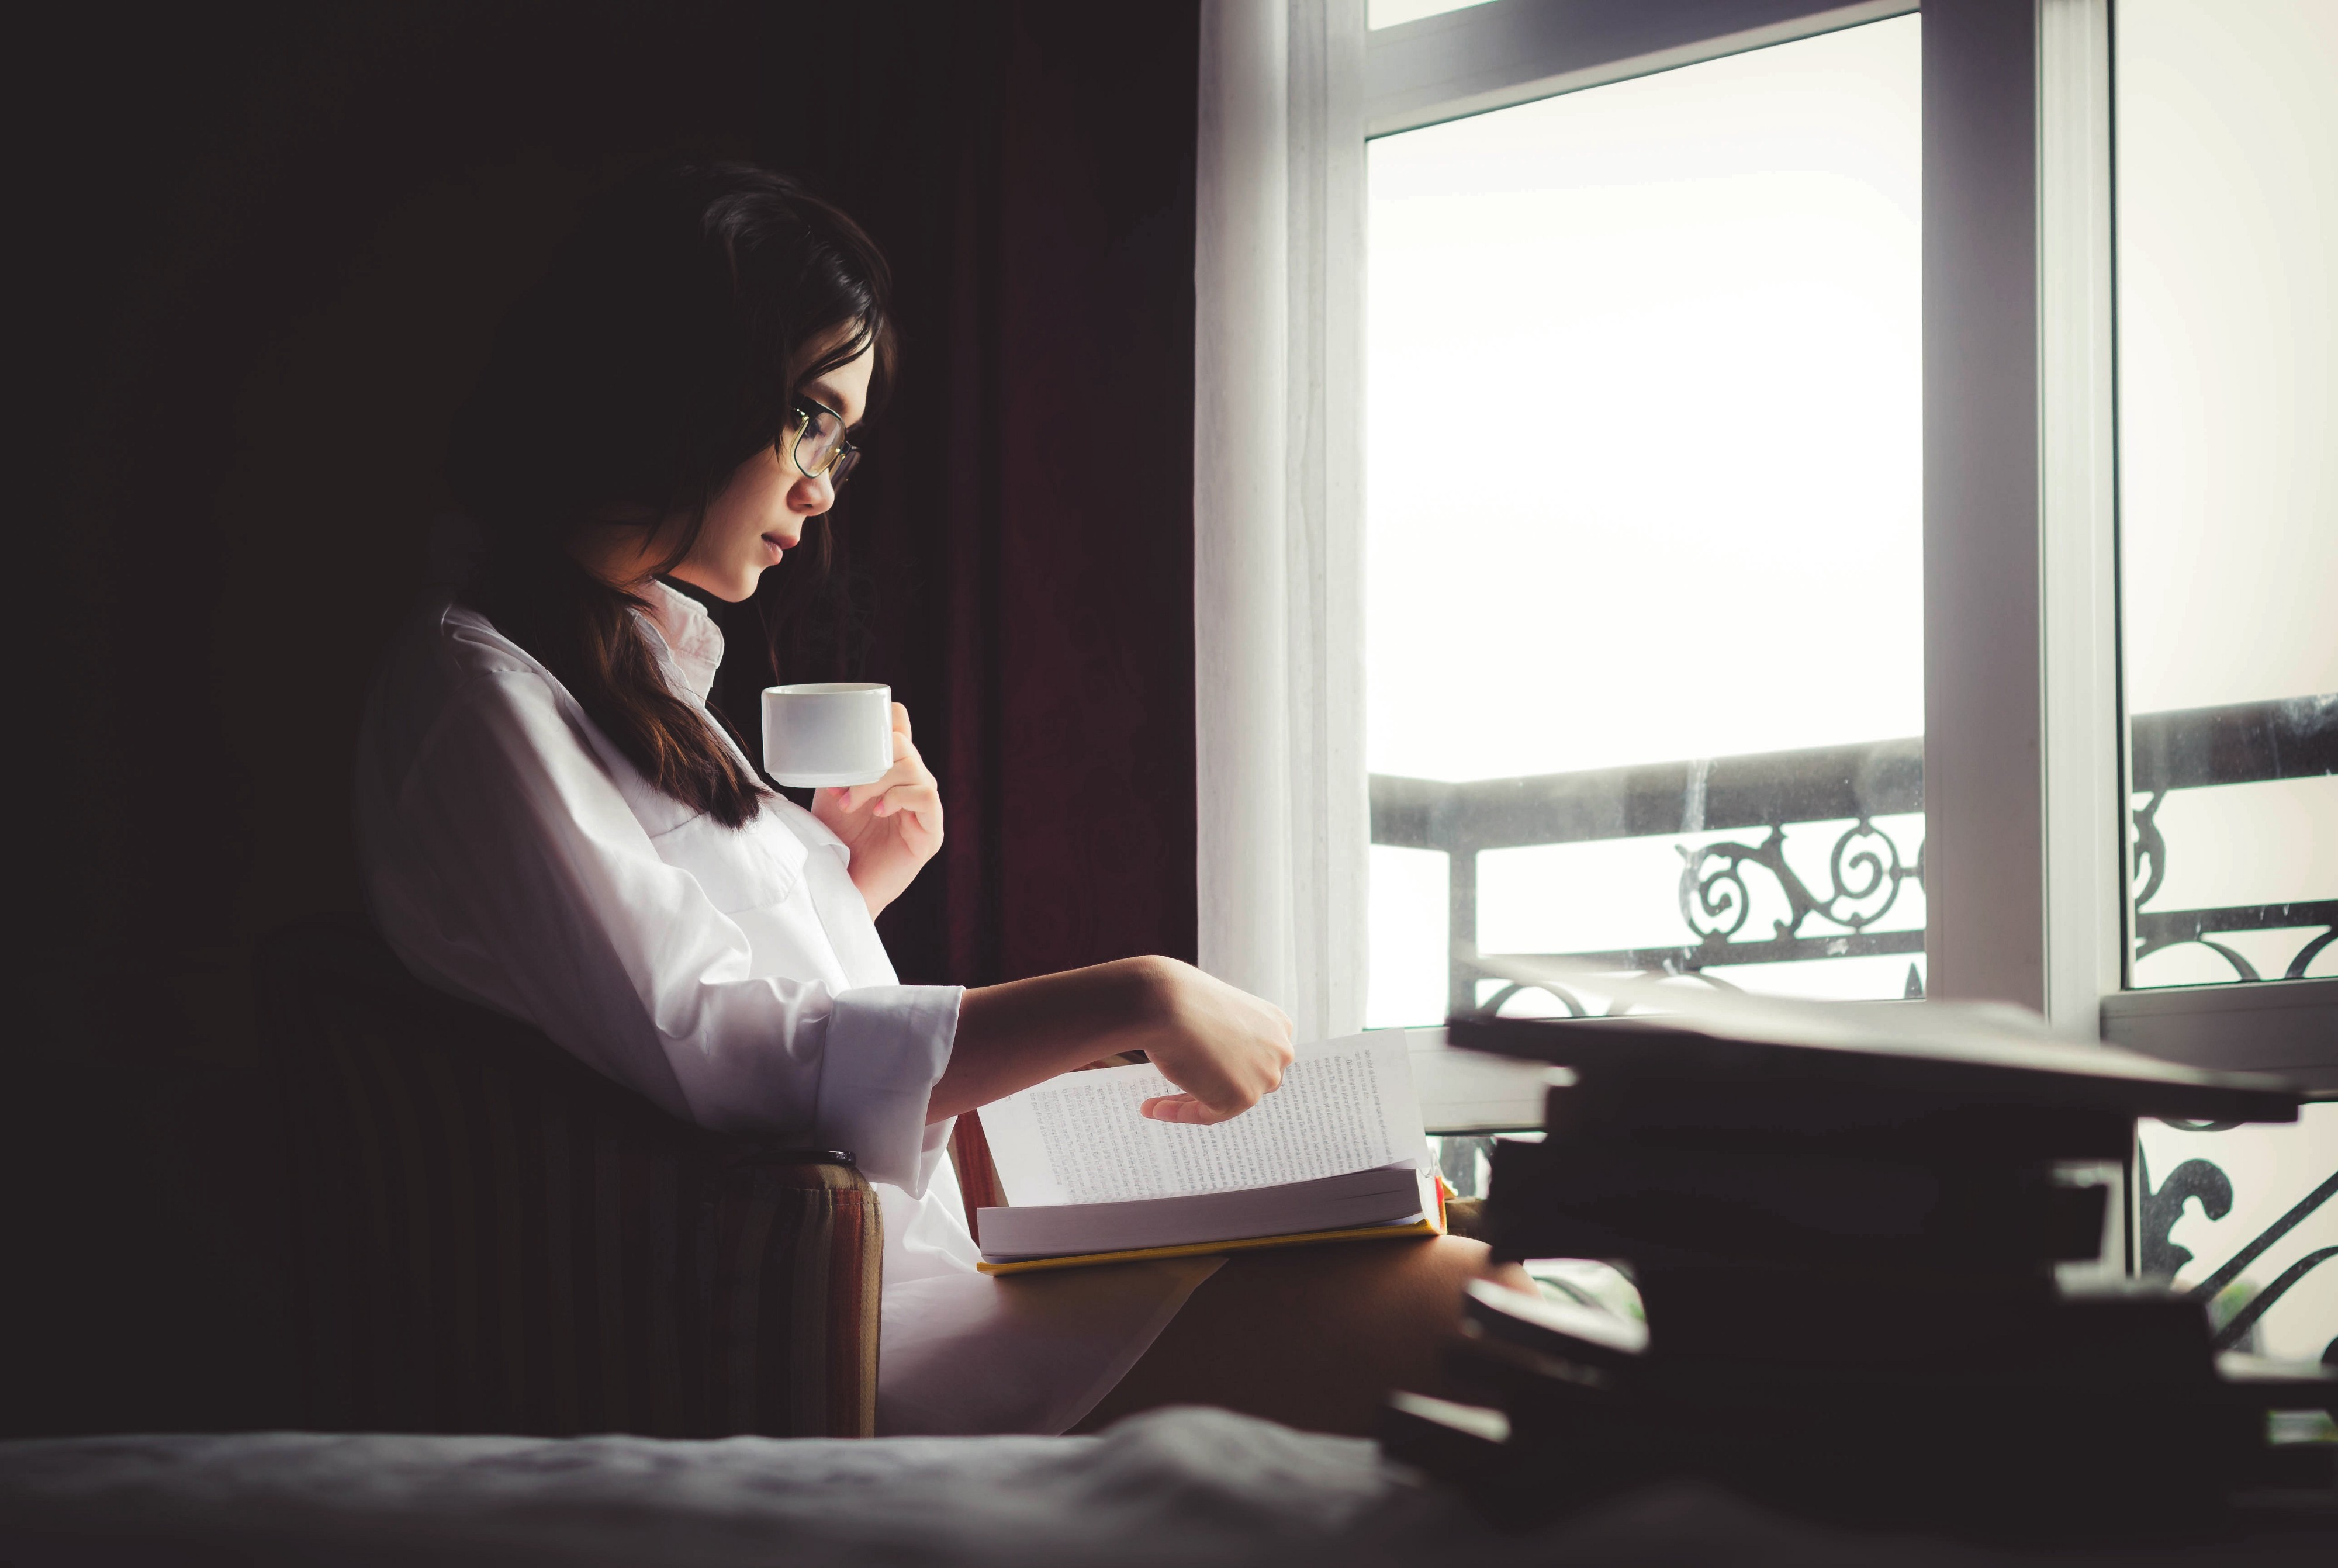 A woman drinking a cup of coffee while reading a book by a window.